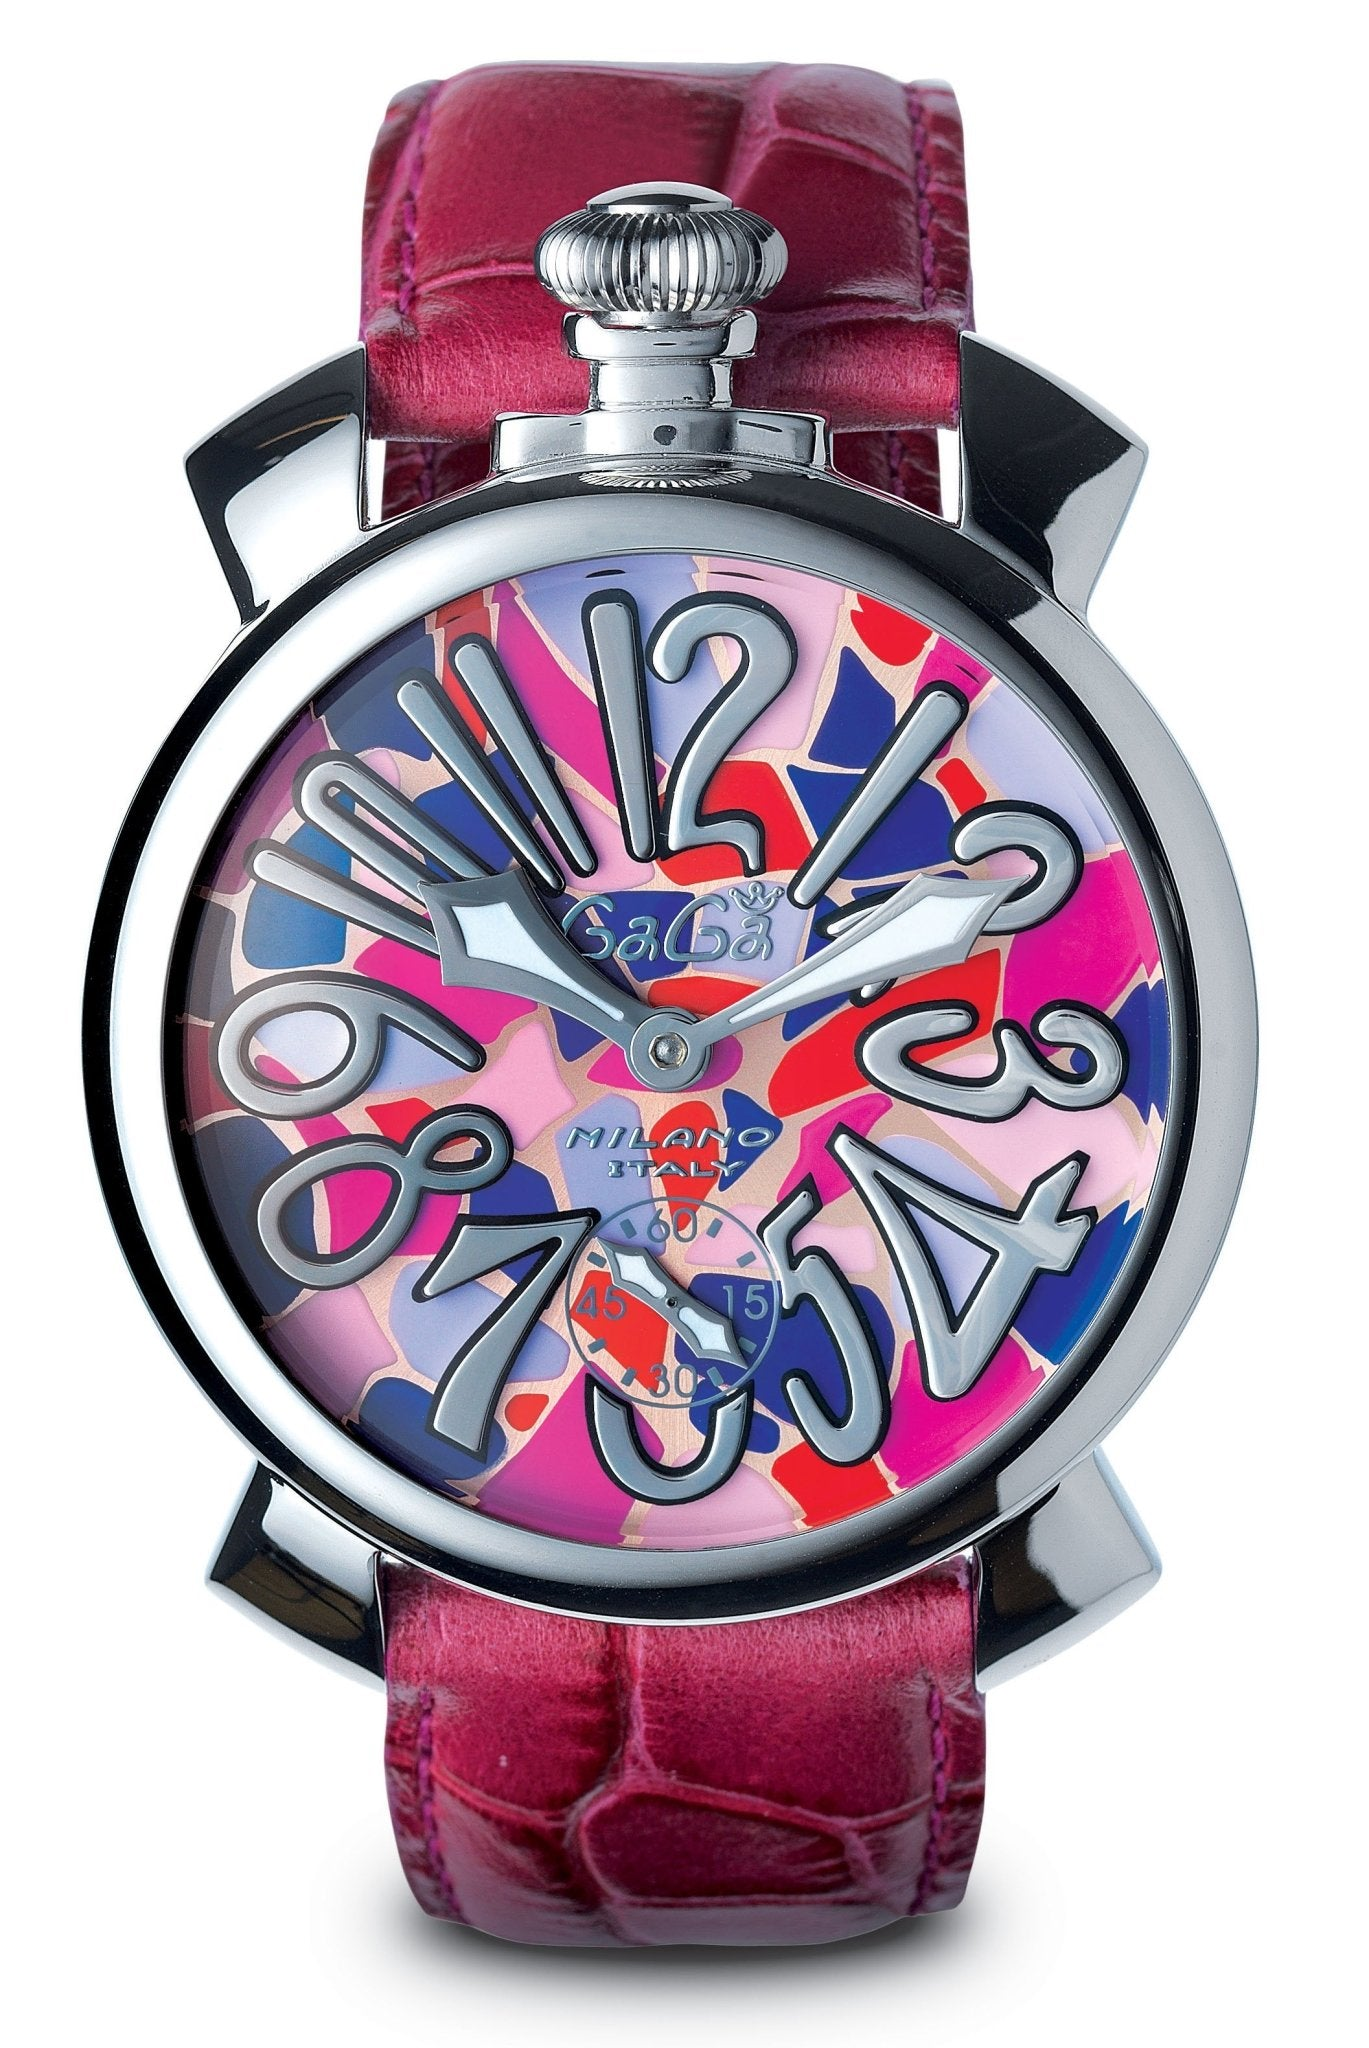 GaGà Milano Manuale 48MM Mosaico Pink - Watches & Crystals